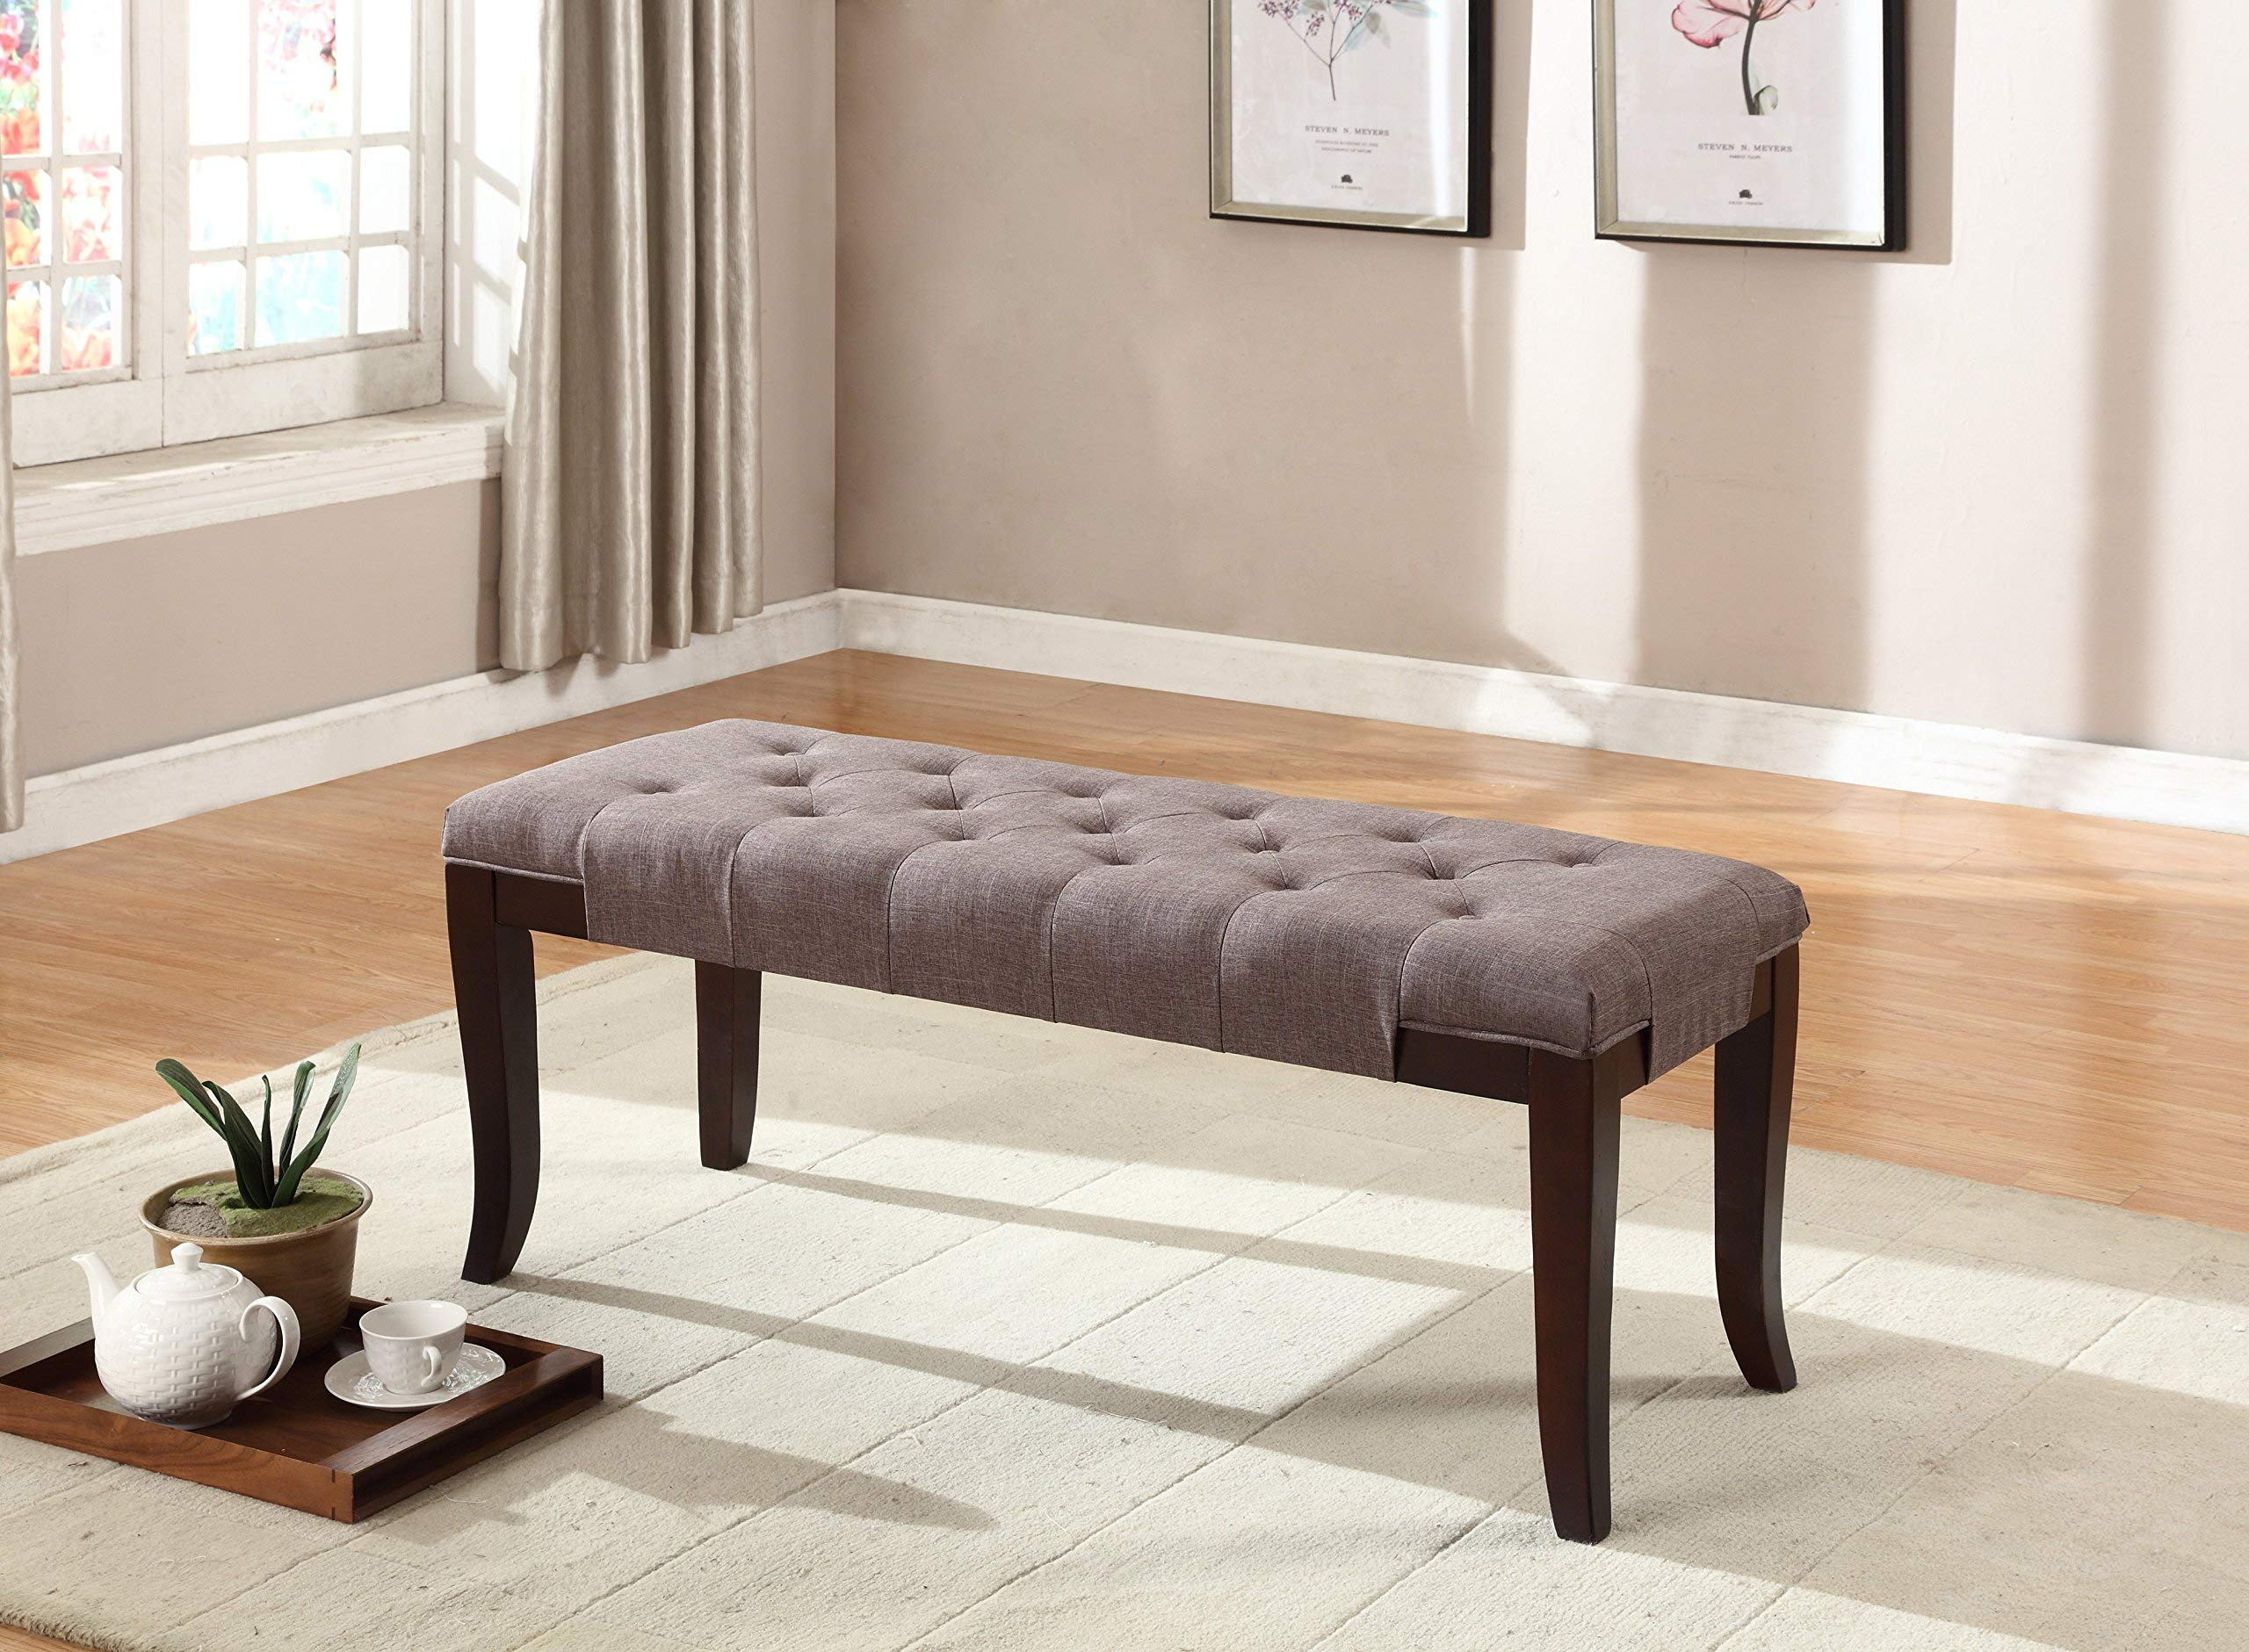 Roundhill Furniture Linon Fabric Tufted Ottoman Bench, Brown by Roundhill Furniture